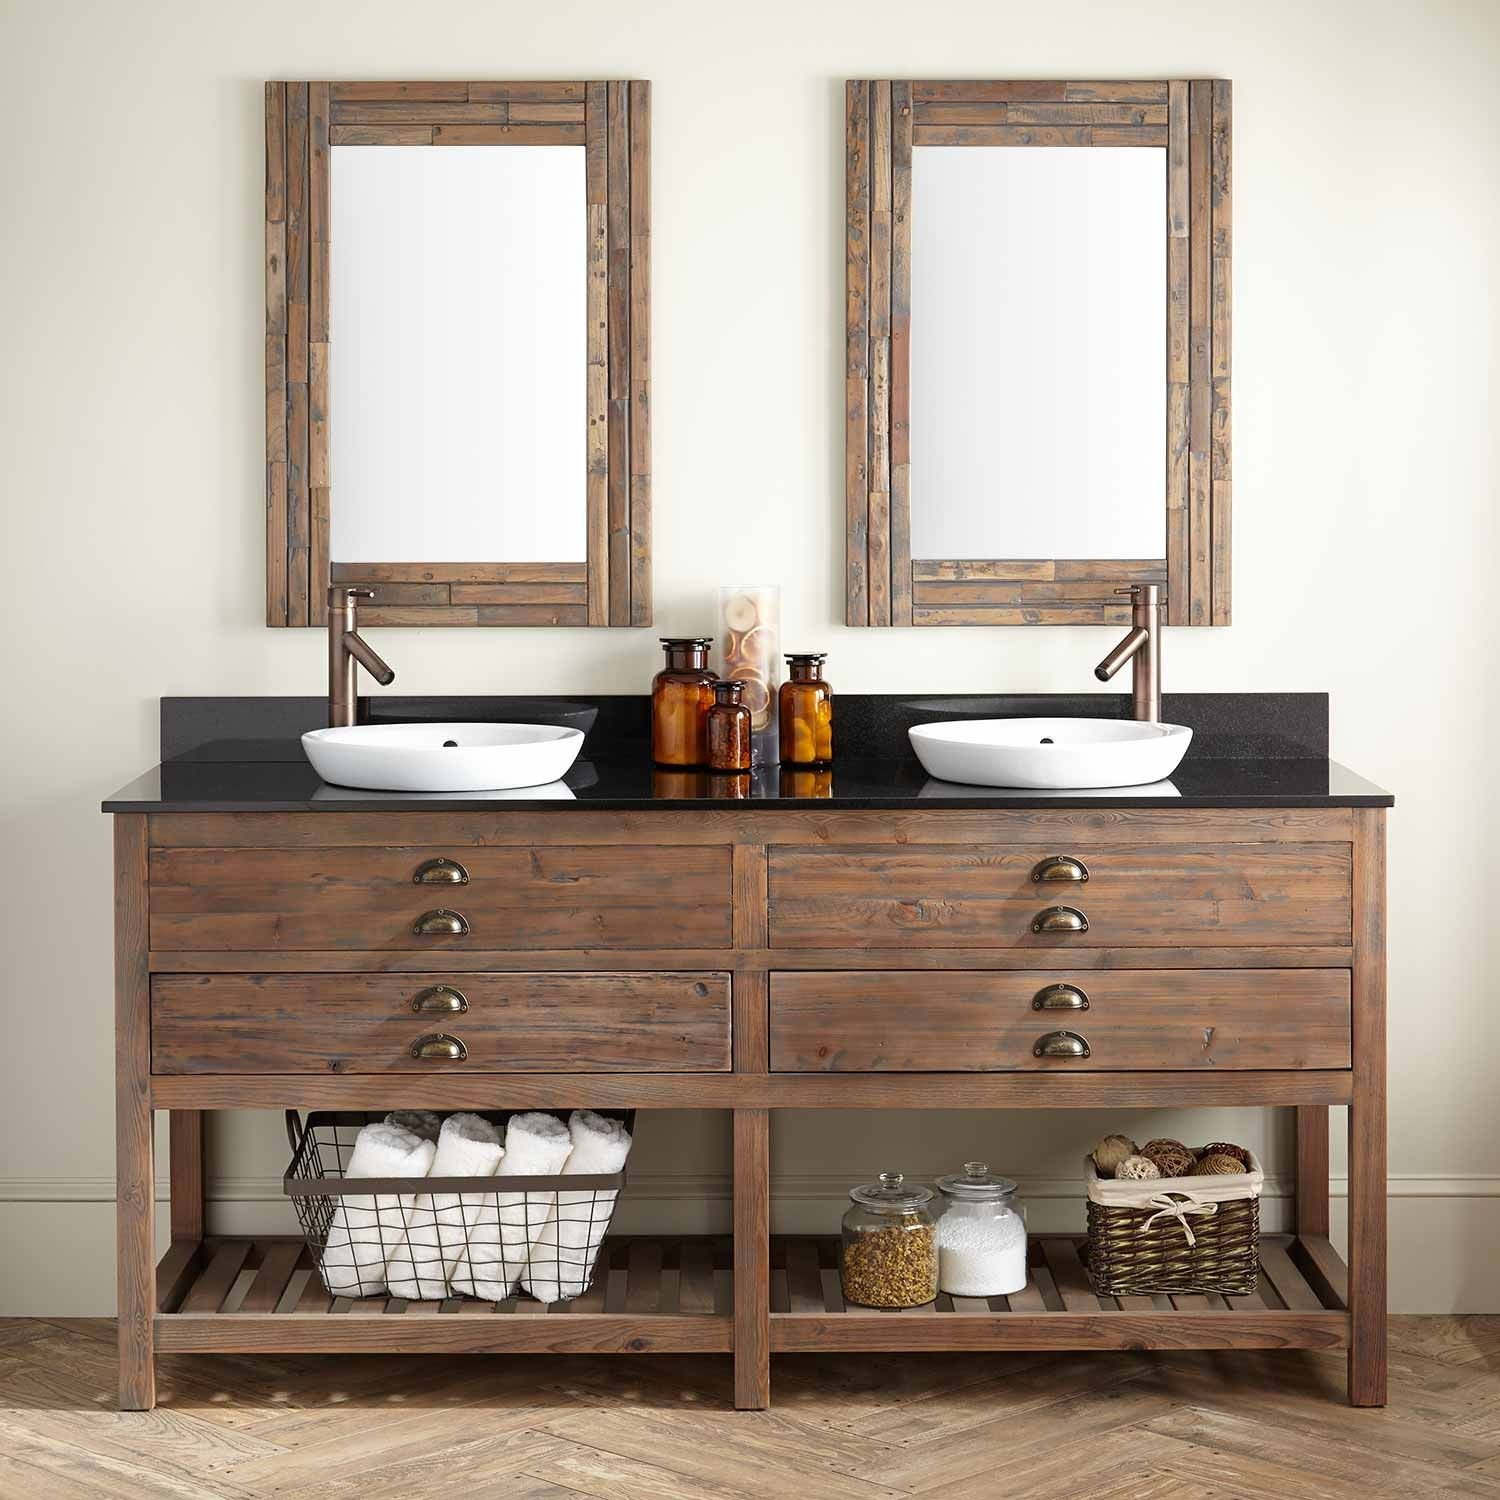 72 Benoist Reclaimed Wood Console Double Vanity For Semi Recessed